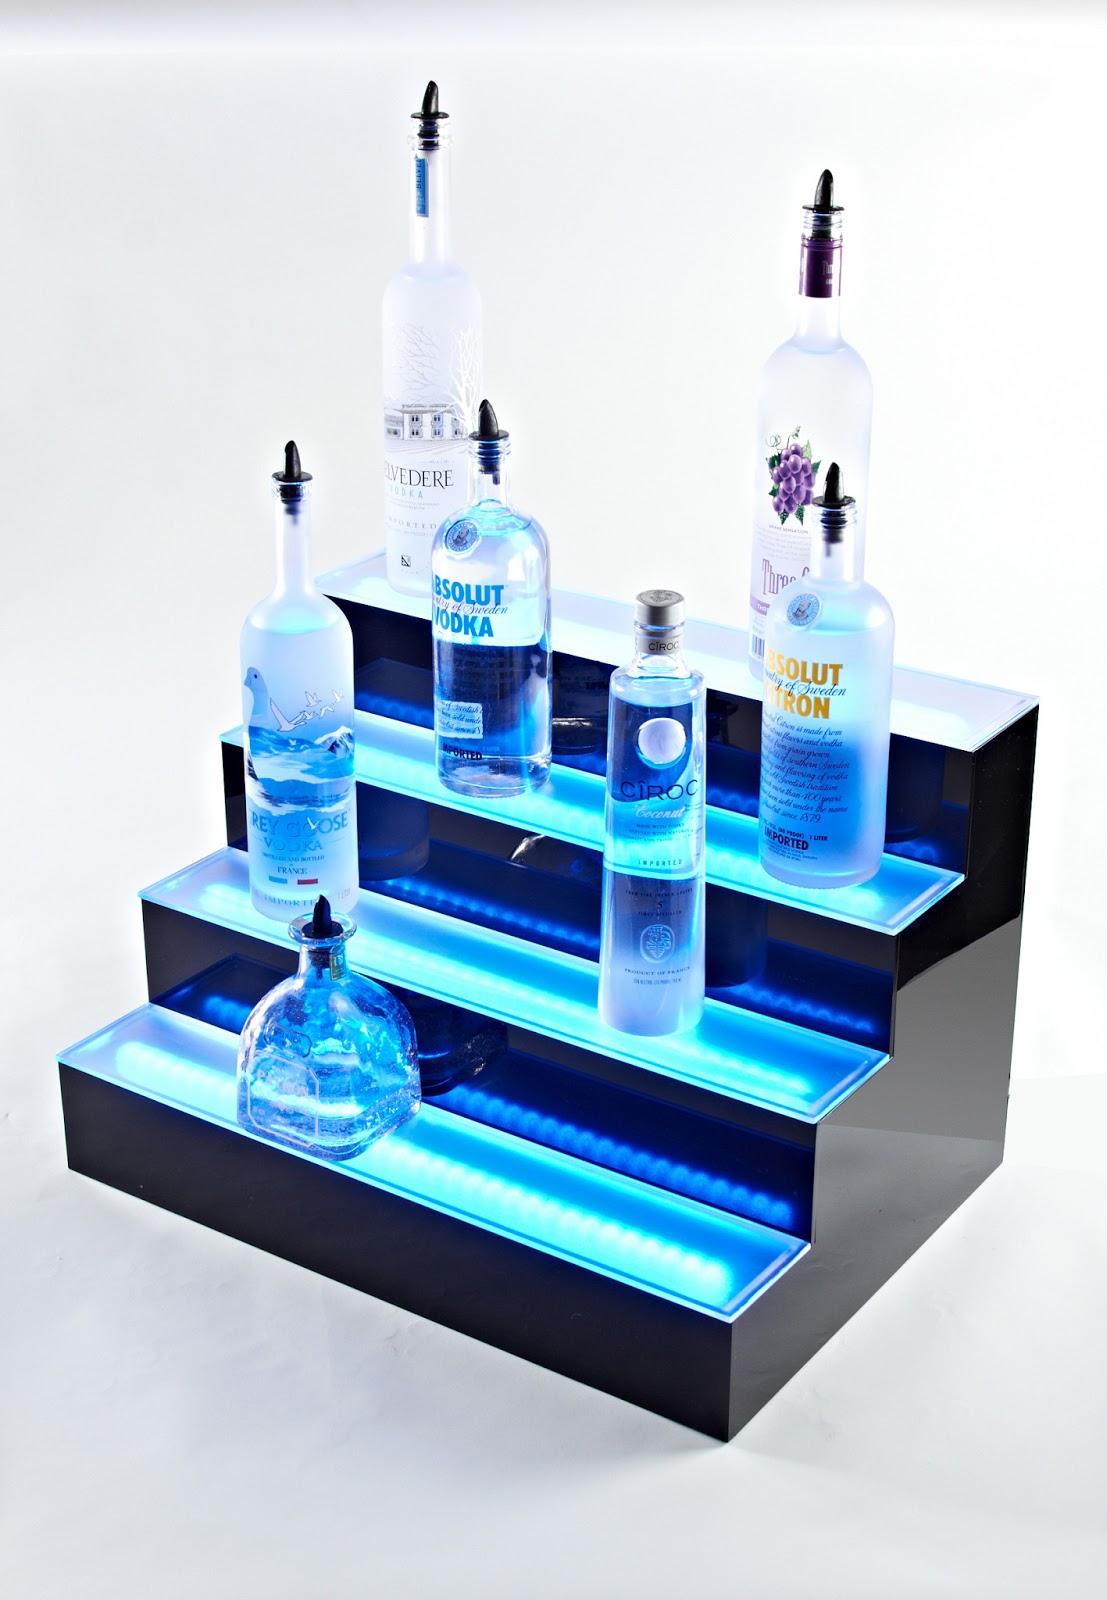 931162 additionally Hotel Breakfast Service c 1874 as well Small Home Bar Ideas moreover 1352963607 likewise Fiber Optic Filled Bartop. on lighted bar displays